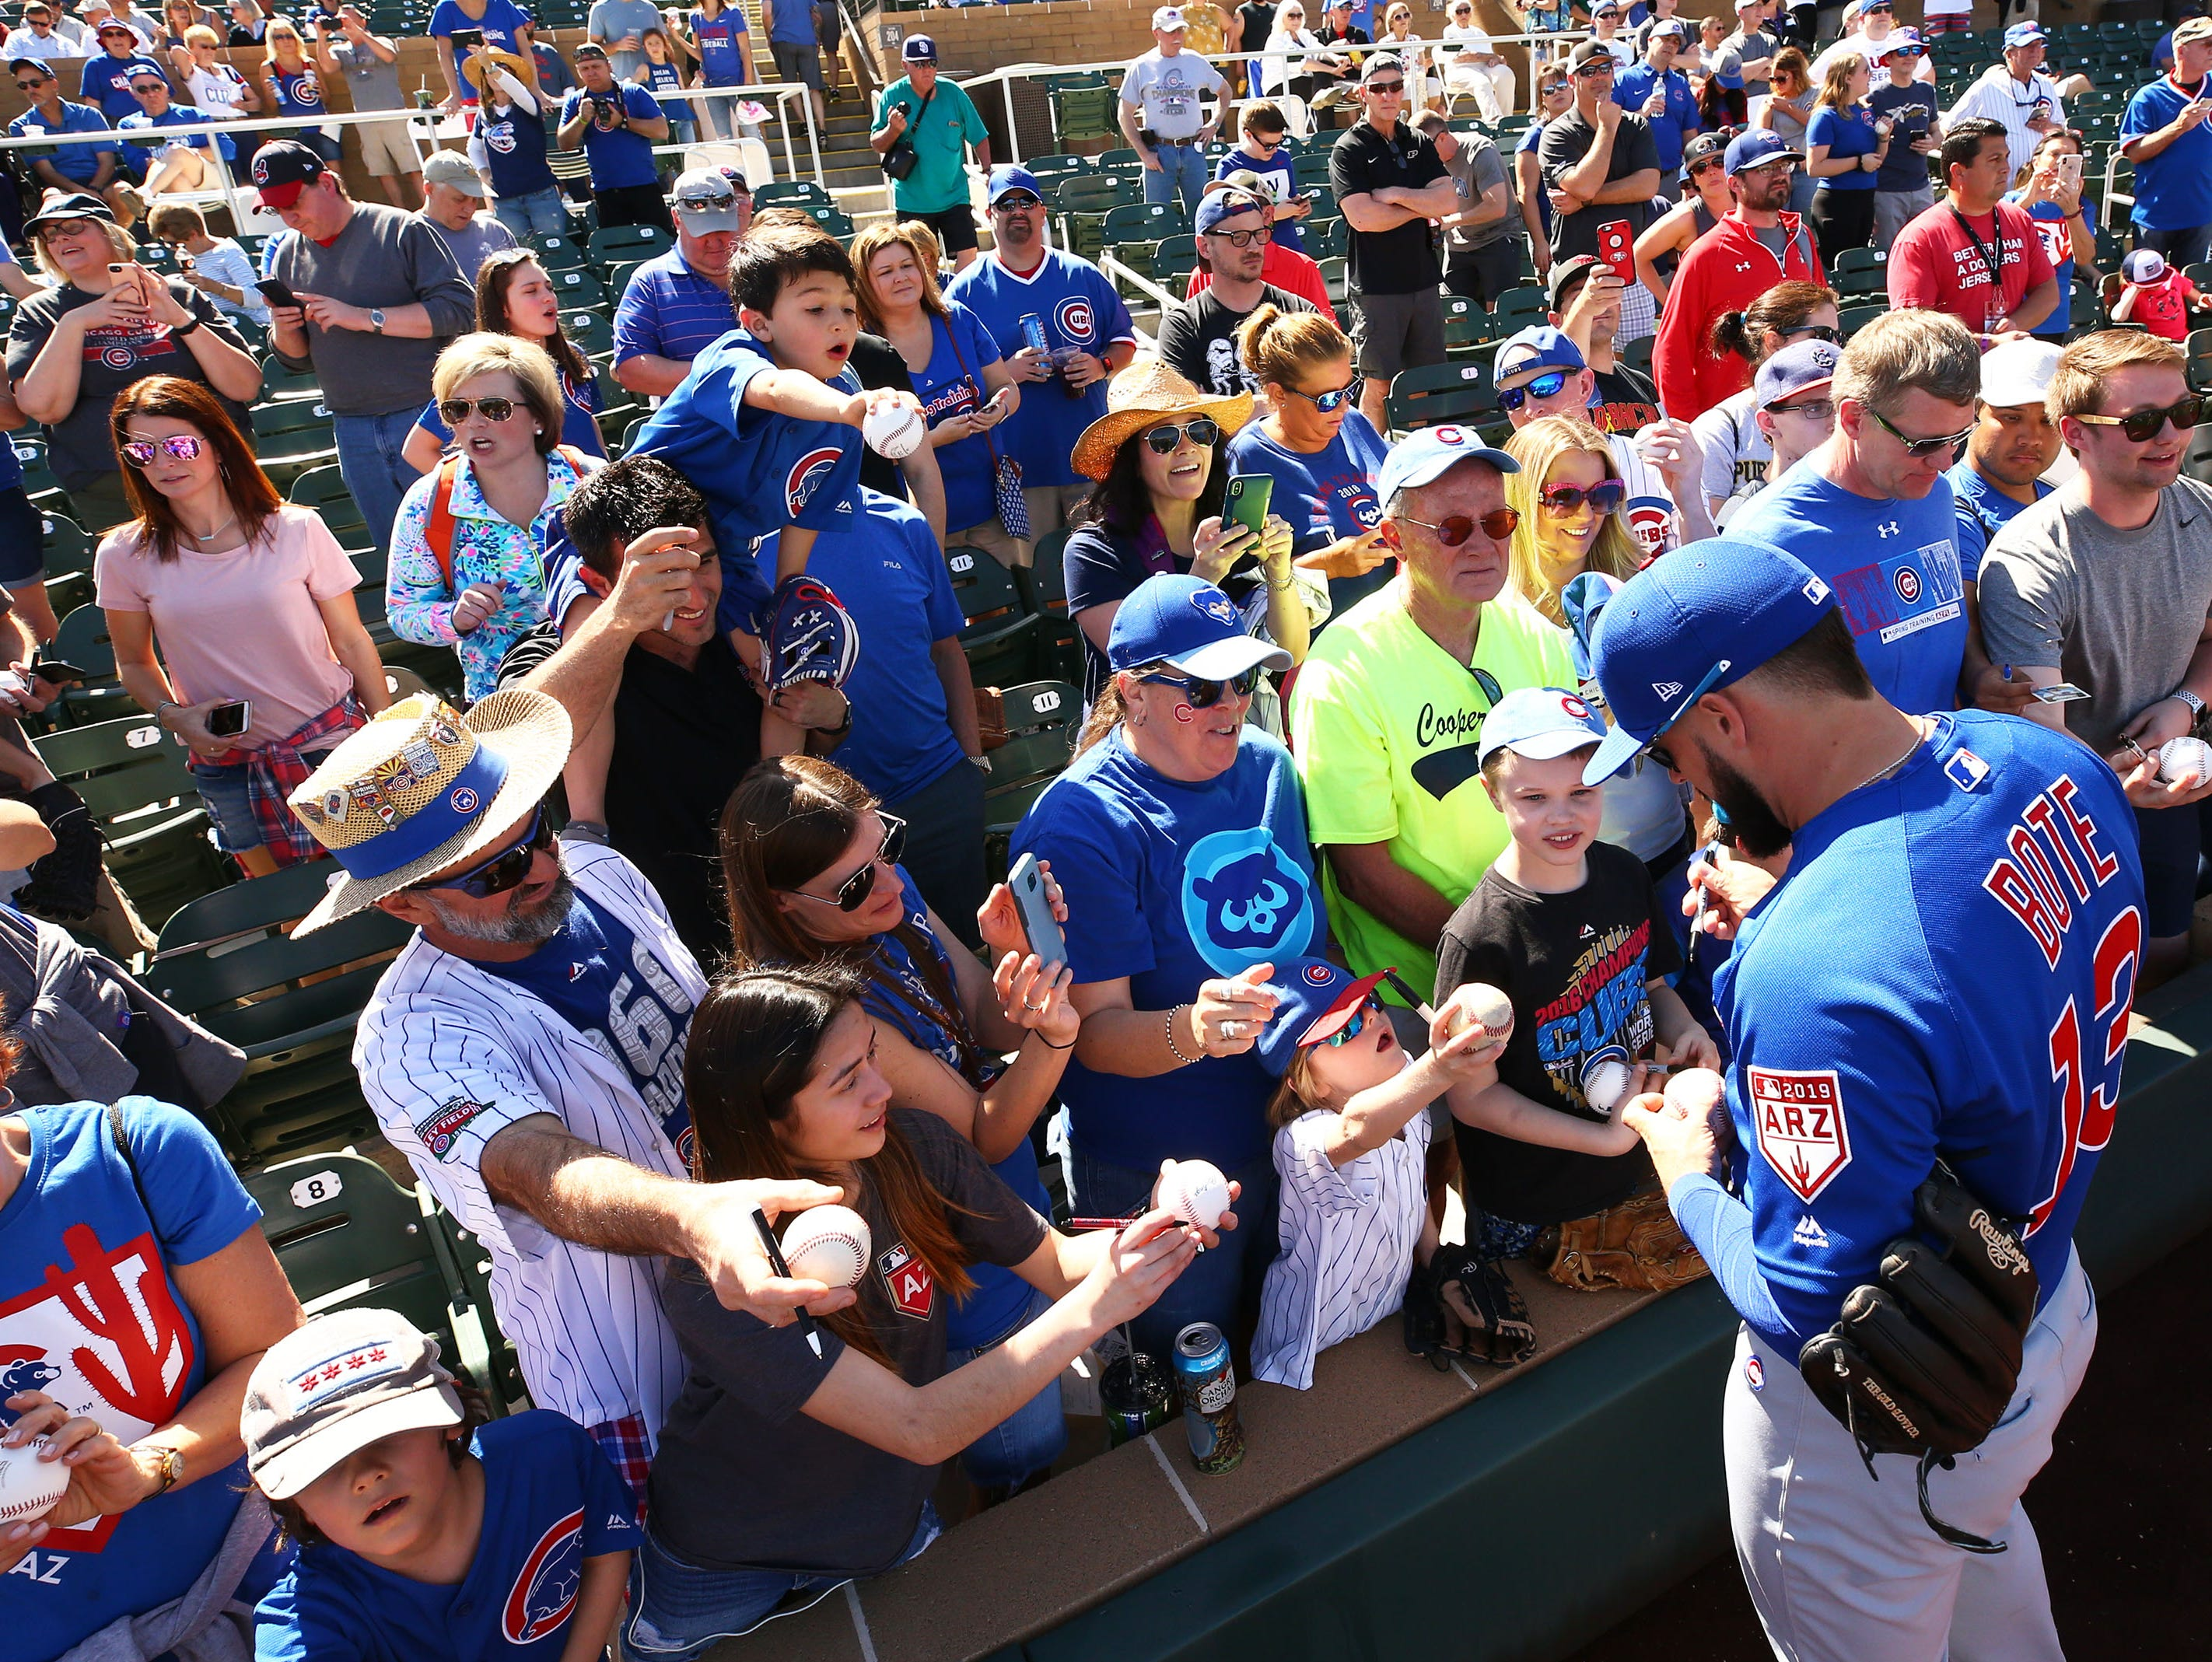 Chicago Cubs David Bote signs autographs before playing the Arizona Diamondbacks during a spring training game on Mar. 1, 2019 at Salt River Fields in Scottsdale, Ariz.